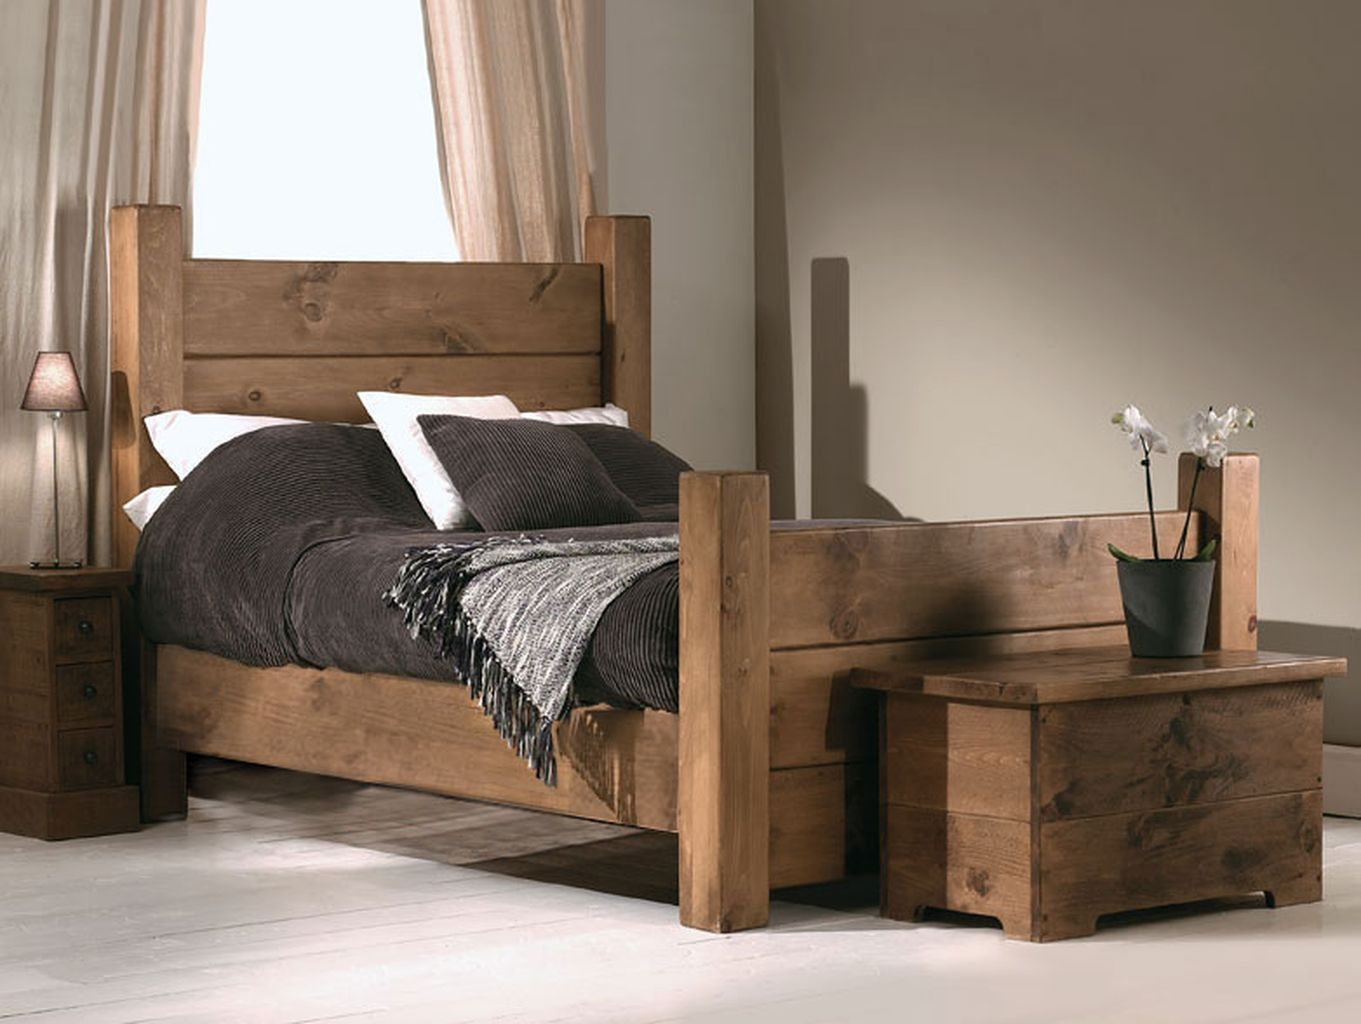 55 Beautiful Vintage Wooden Beds Ideas Makes Bedroom Classic